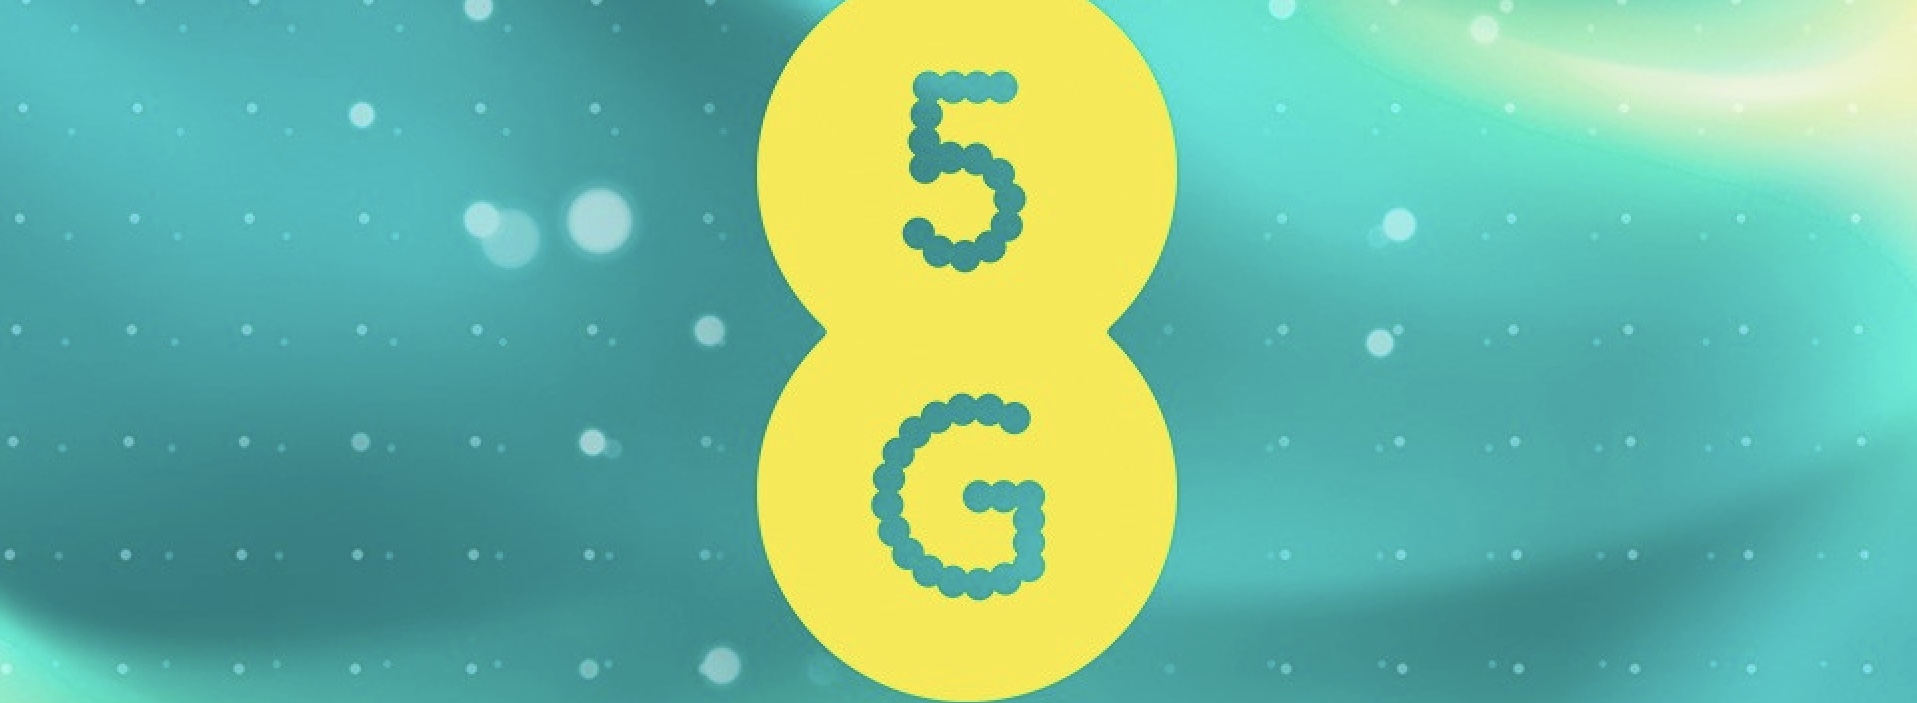 EE Launches Unlimited Data Plans